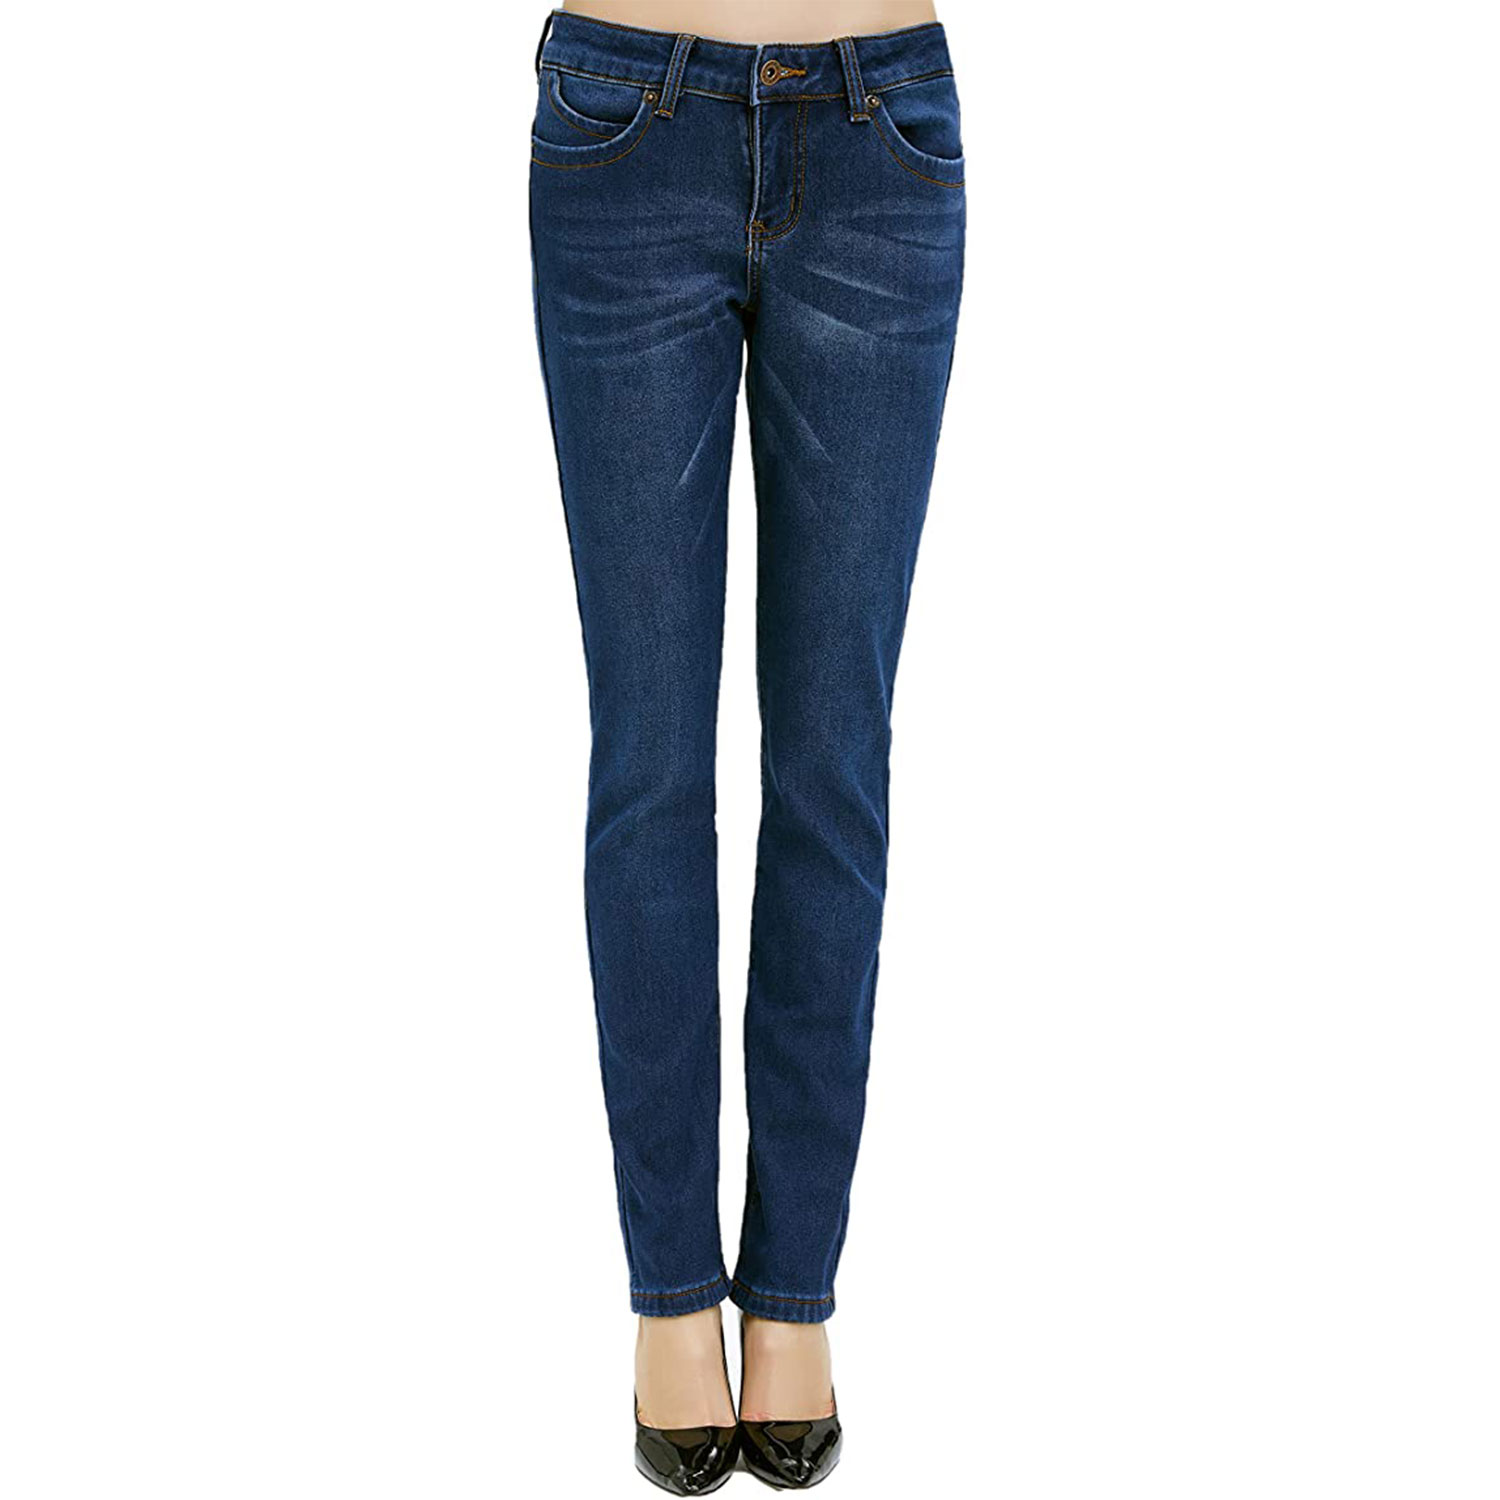 camii mia women's winter thermal mid-rise jeans